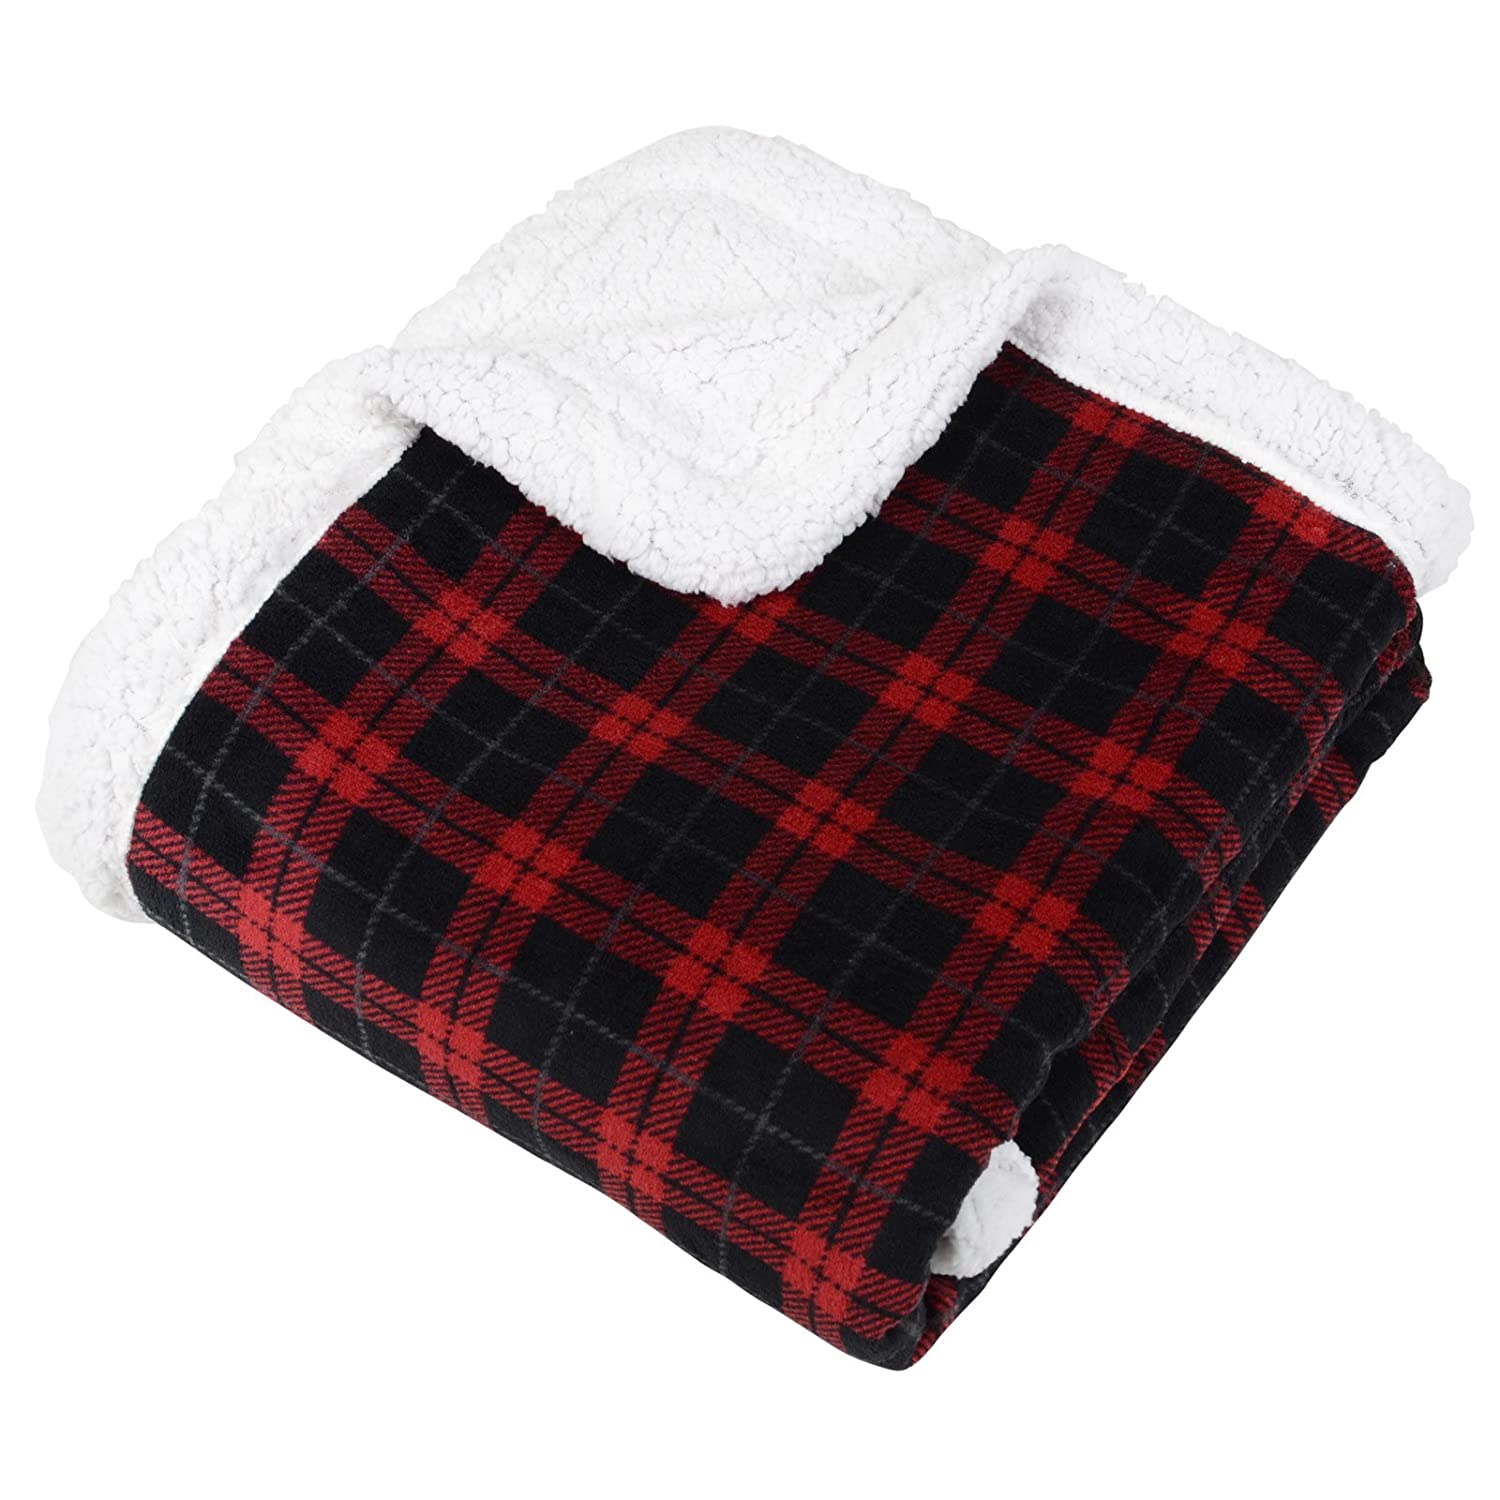 Grey Black Tartan Check Fleece Blanket Soft Sherpa Sofa Bed